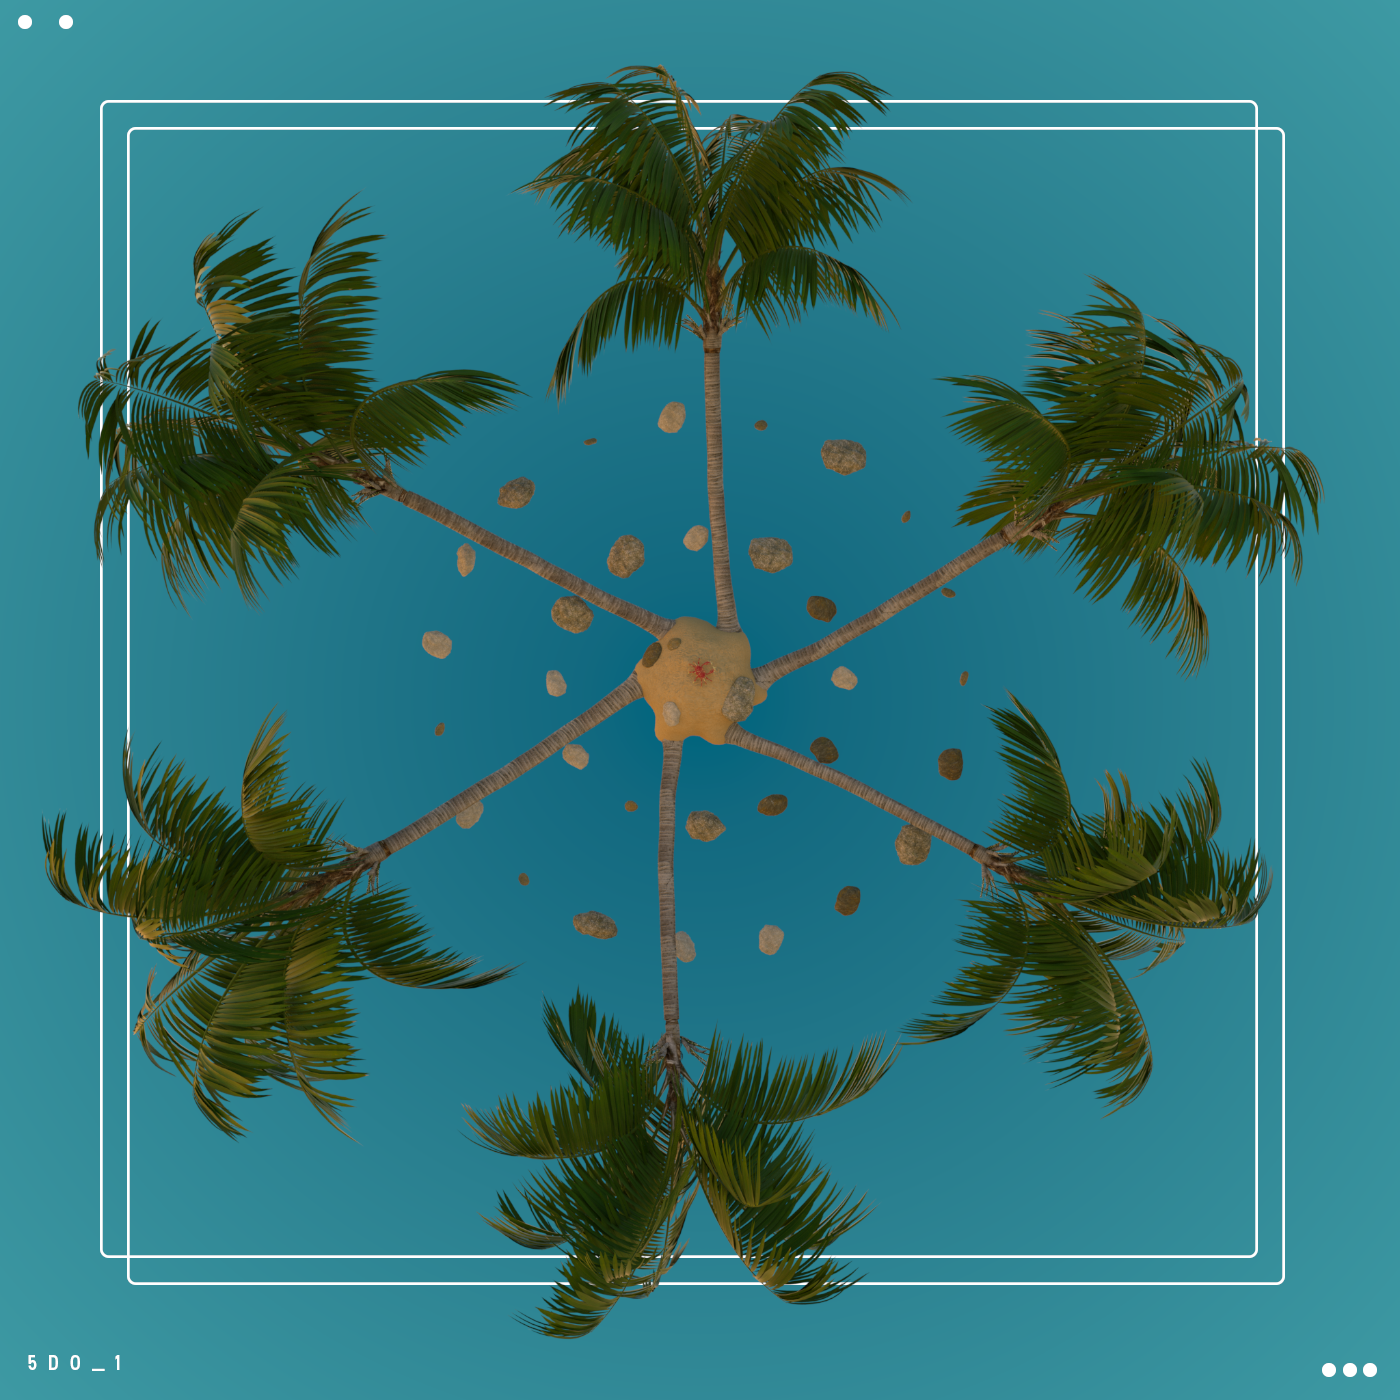 5D0_palm_tree_v01.png